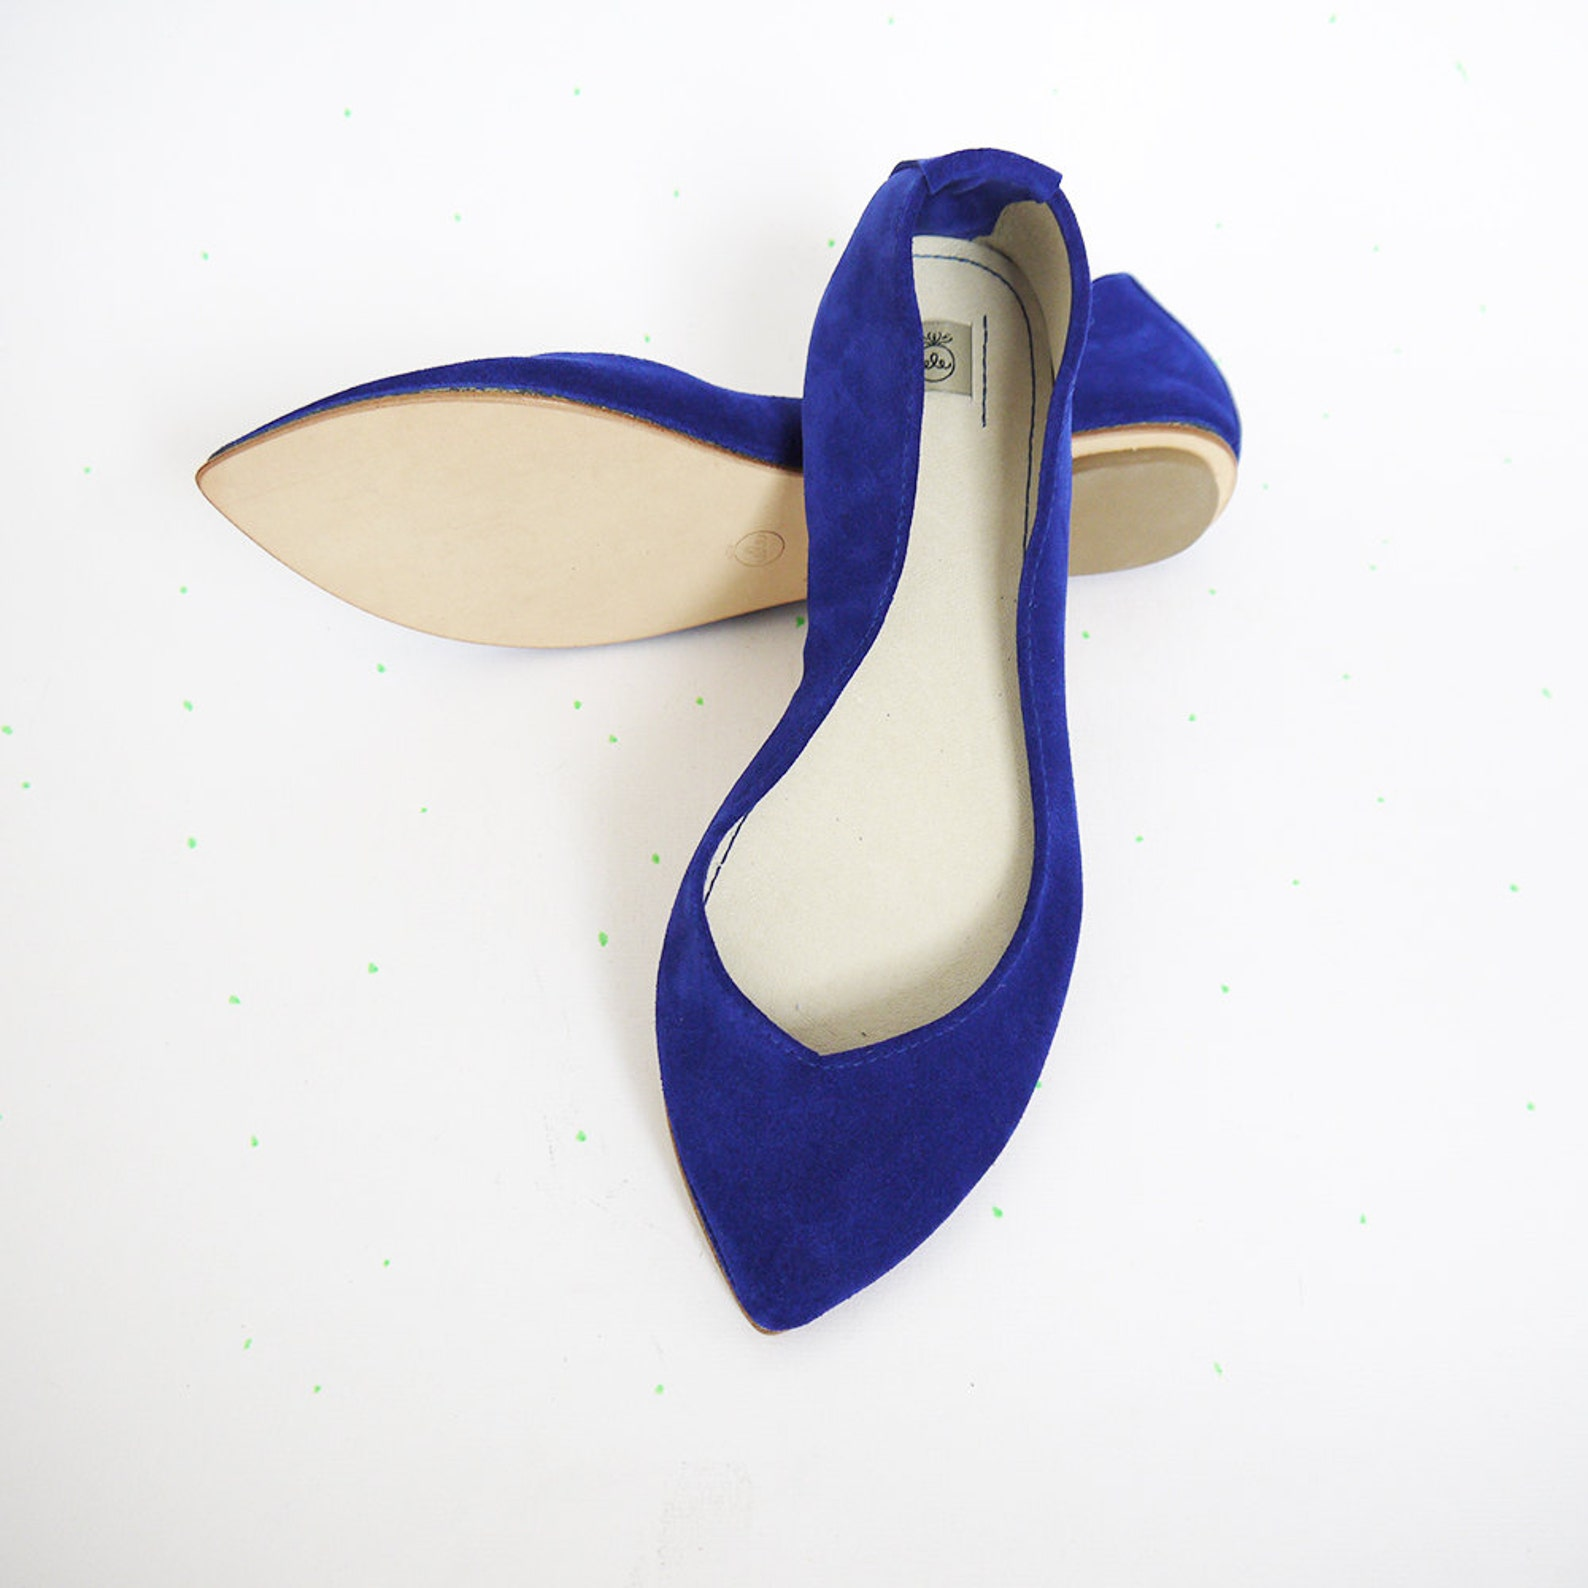 ballet flats shoes. pointy shoes. pointed ballerina. bridal shoes. wedding shoe. gift for her. royal blue ballet flats. husband